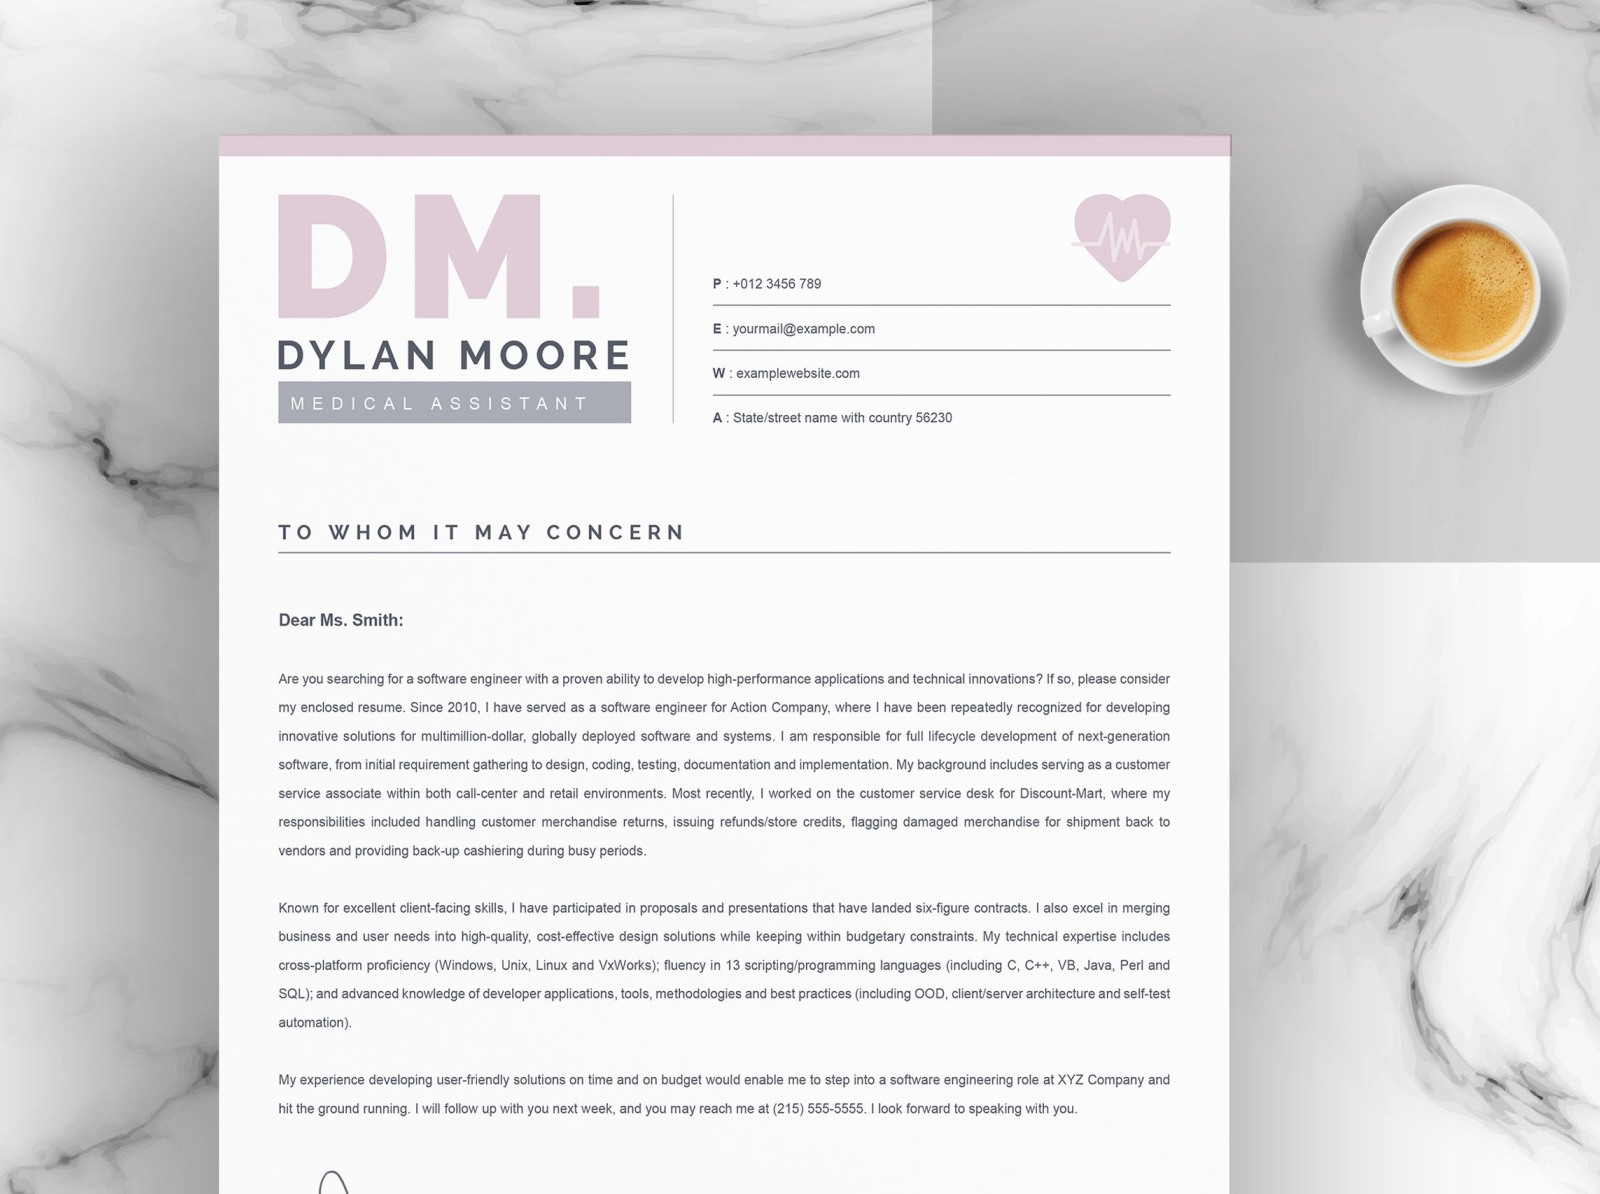 Resume Template Medical Assistant from cdn.dribbble.com